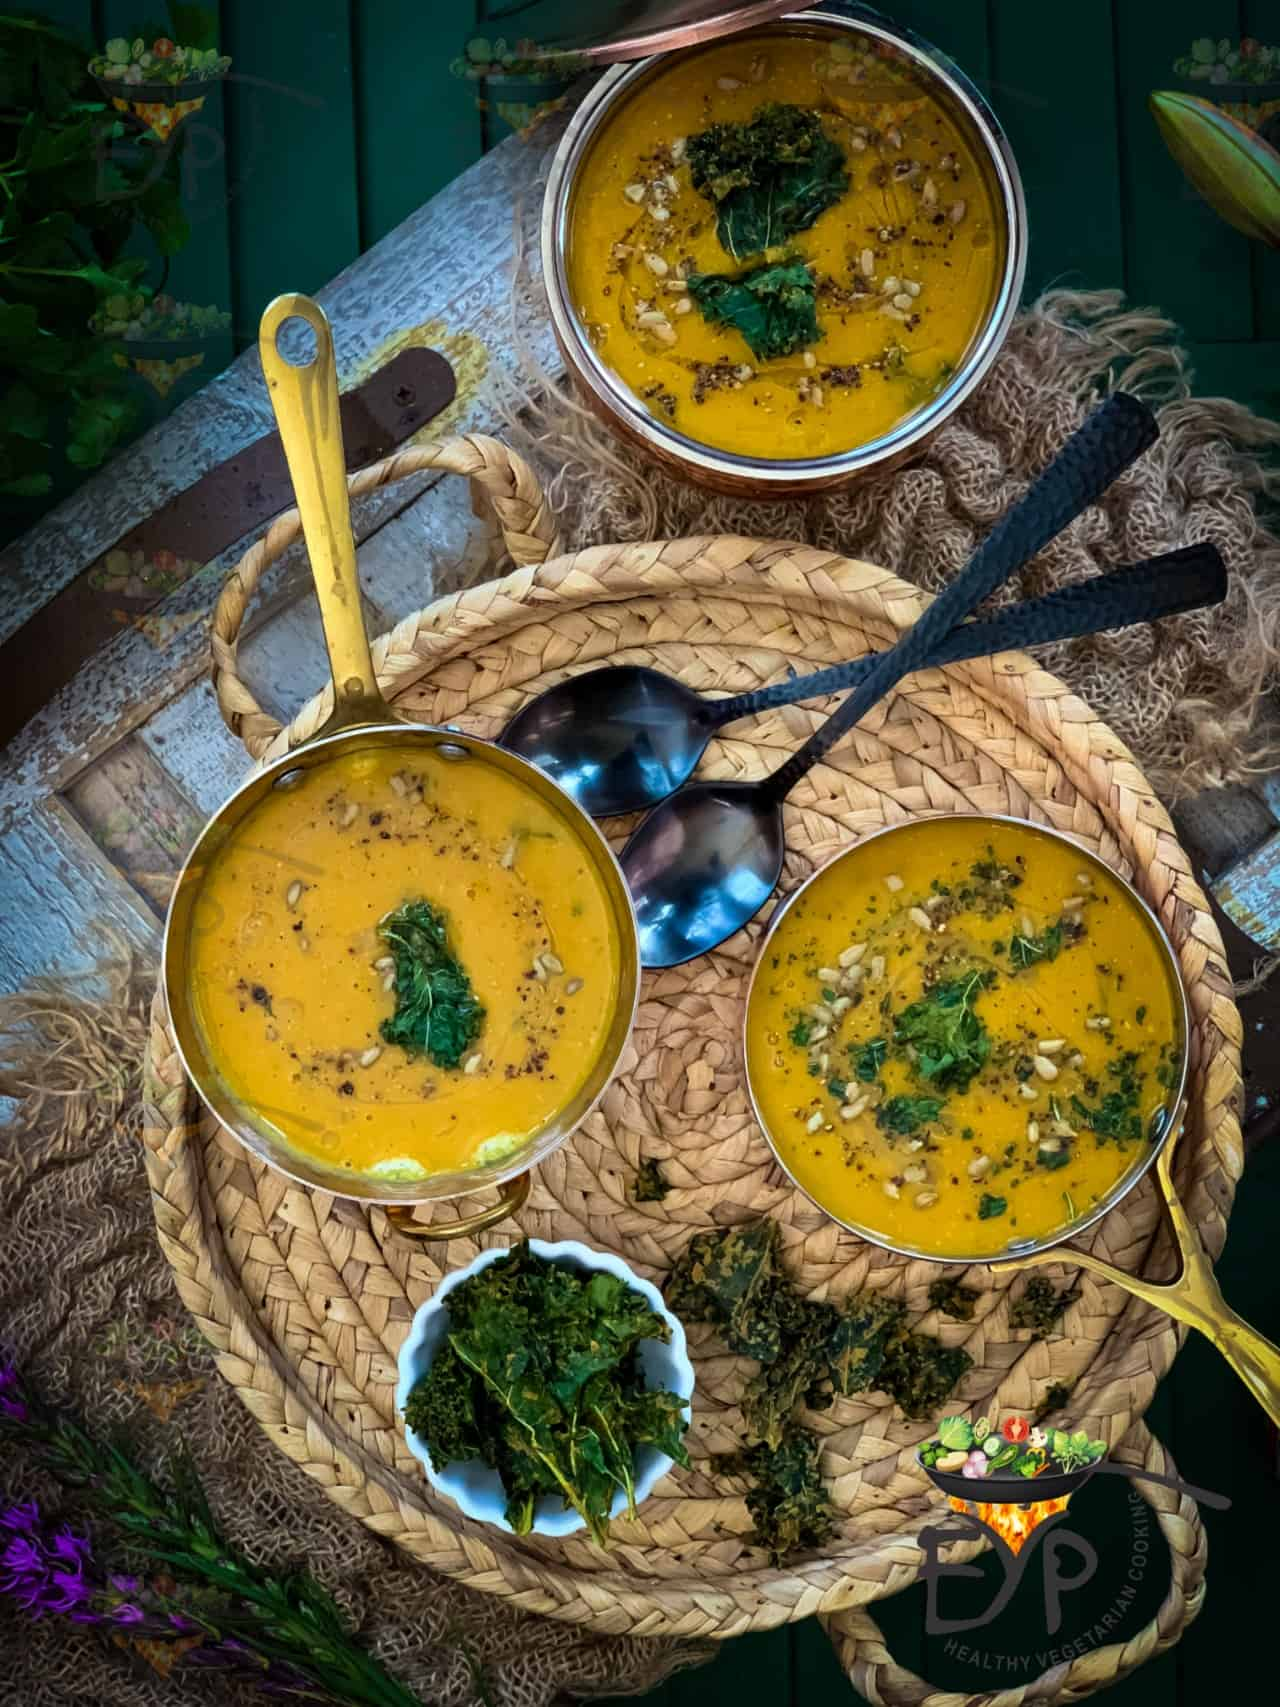 Lentil and Sweet potato soup garnished with kale leaves, black pepper and sun flower seeds